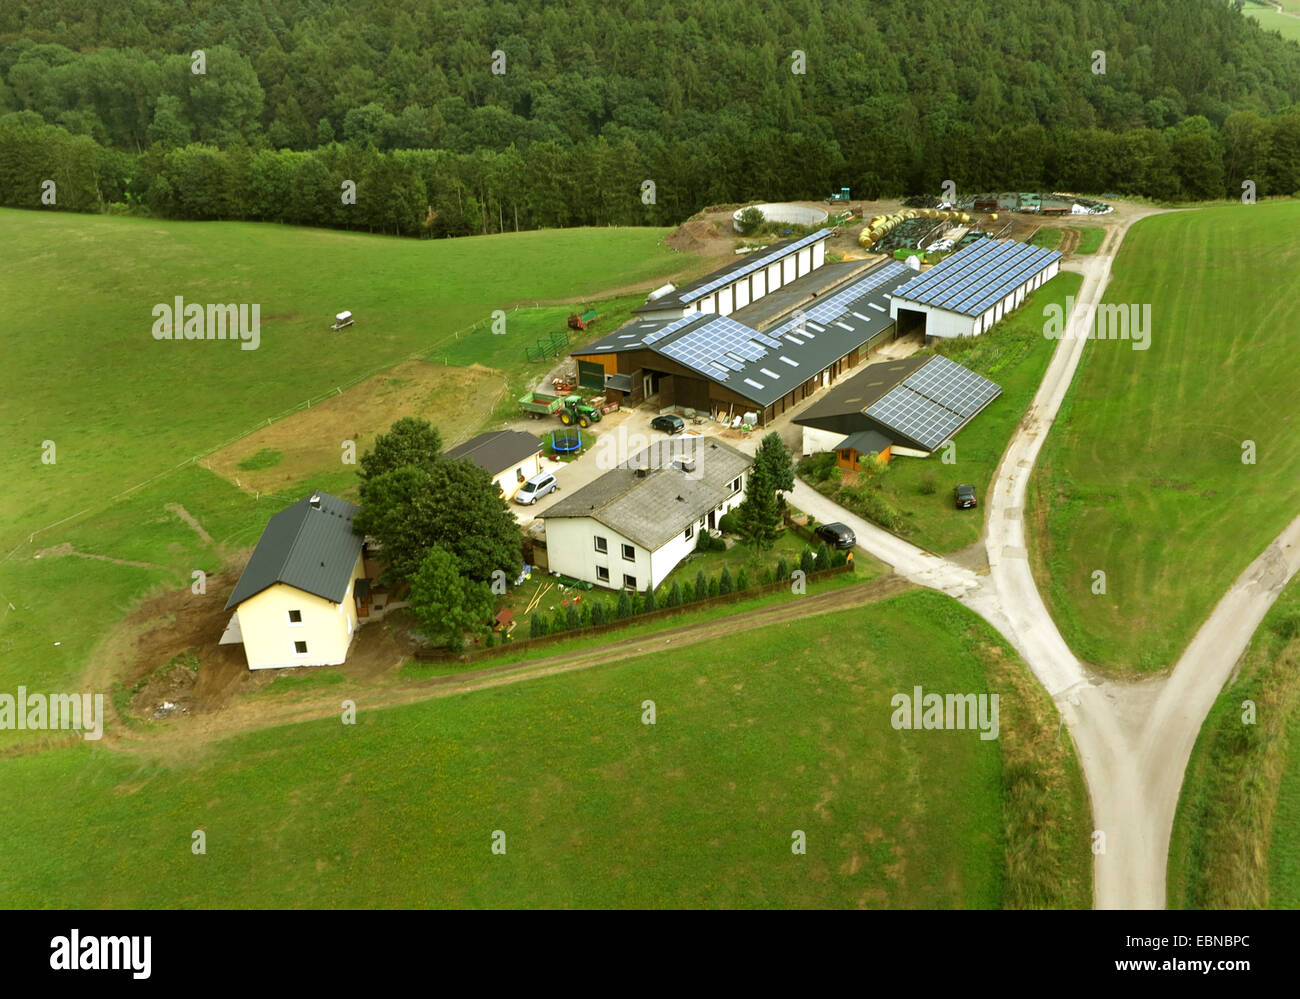 aerial view to farmhouses in Welleringhausen and stables with solar roofes, Germany, Hesse, Sauerland, Willingen - Stock Image